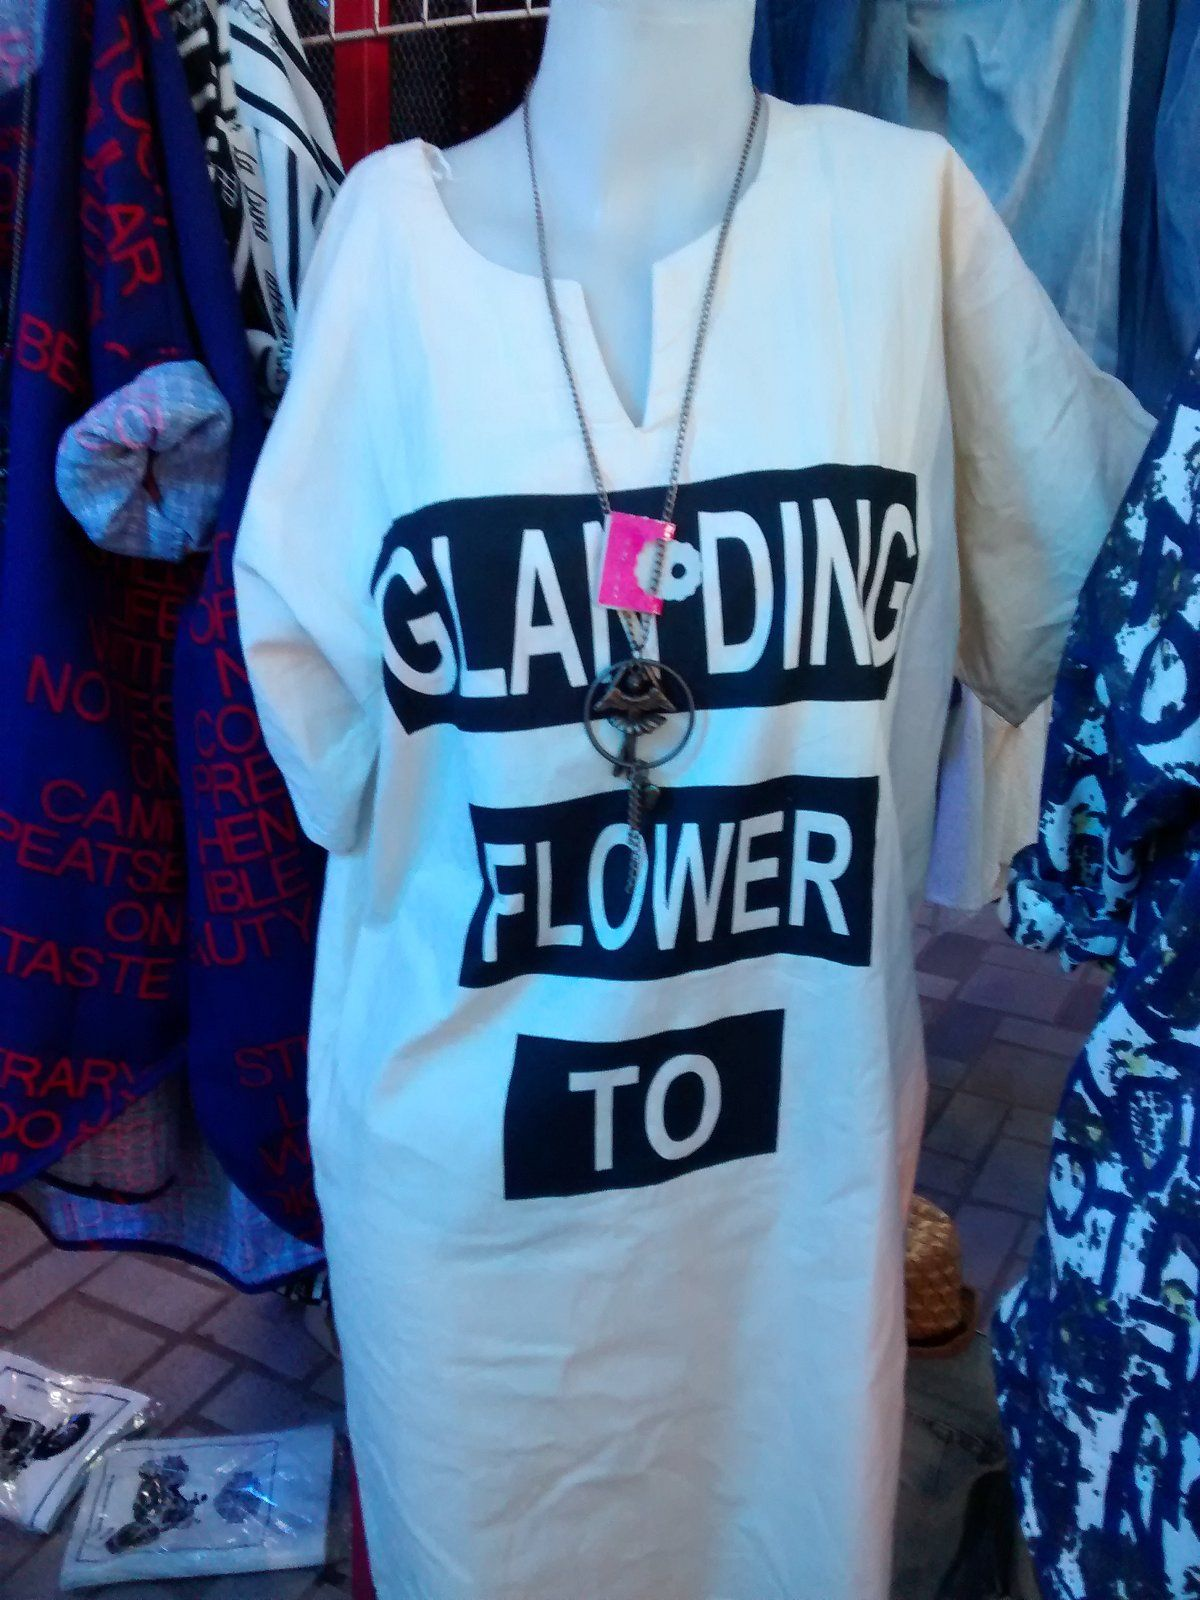 Glanding flower to